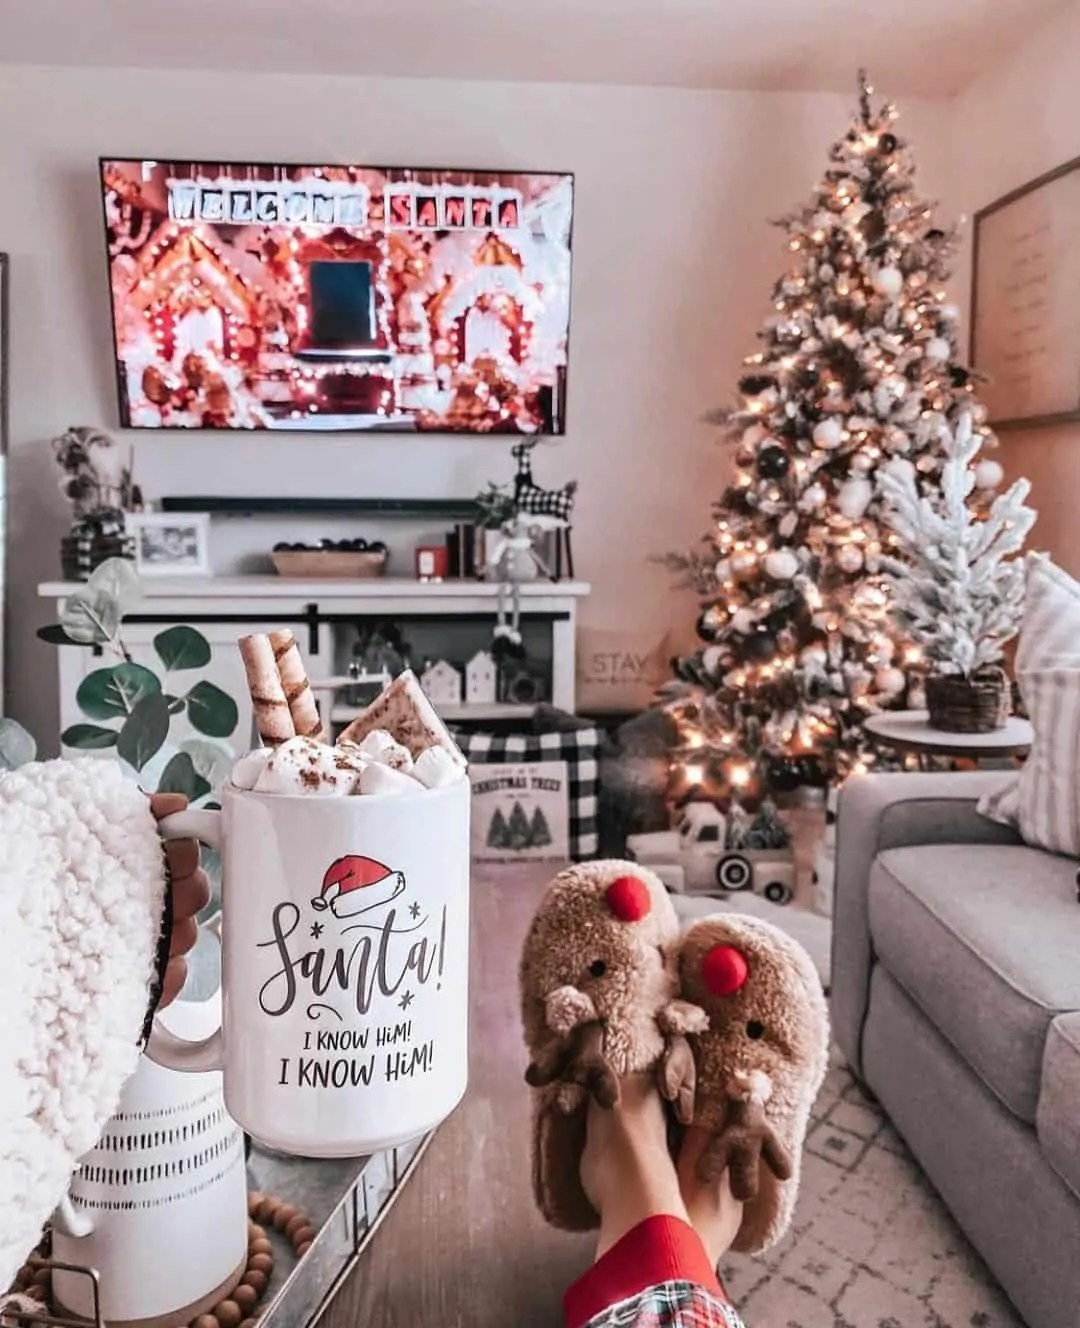 30 Christmas Aesthetic Images you must see: WARNING you will get Christmas mood INSTANTLY! 33